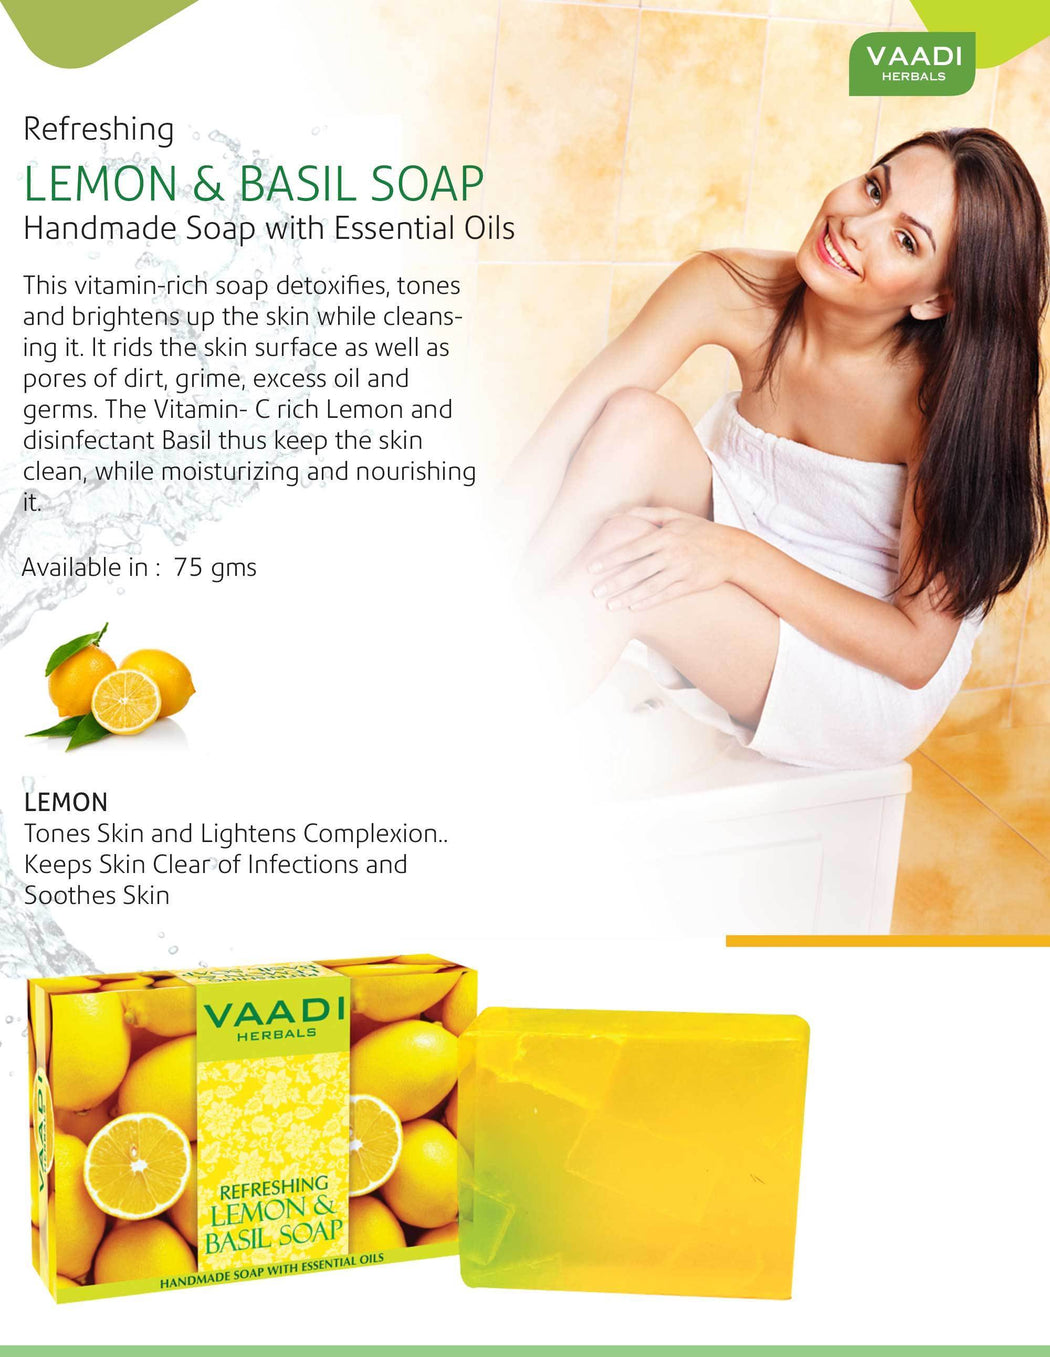 Refreshing Organic Lemon & Basil Soap - Tones & Brightens Skin - Detoxifies Skin Deep (12 x 75 gms / 2.7 oz)